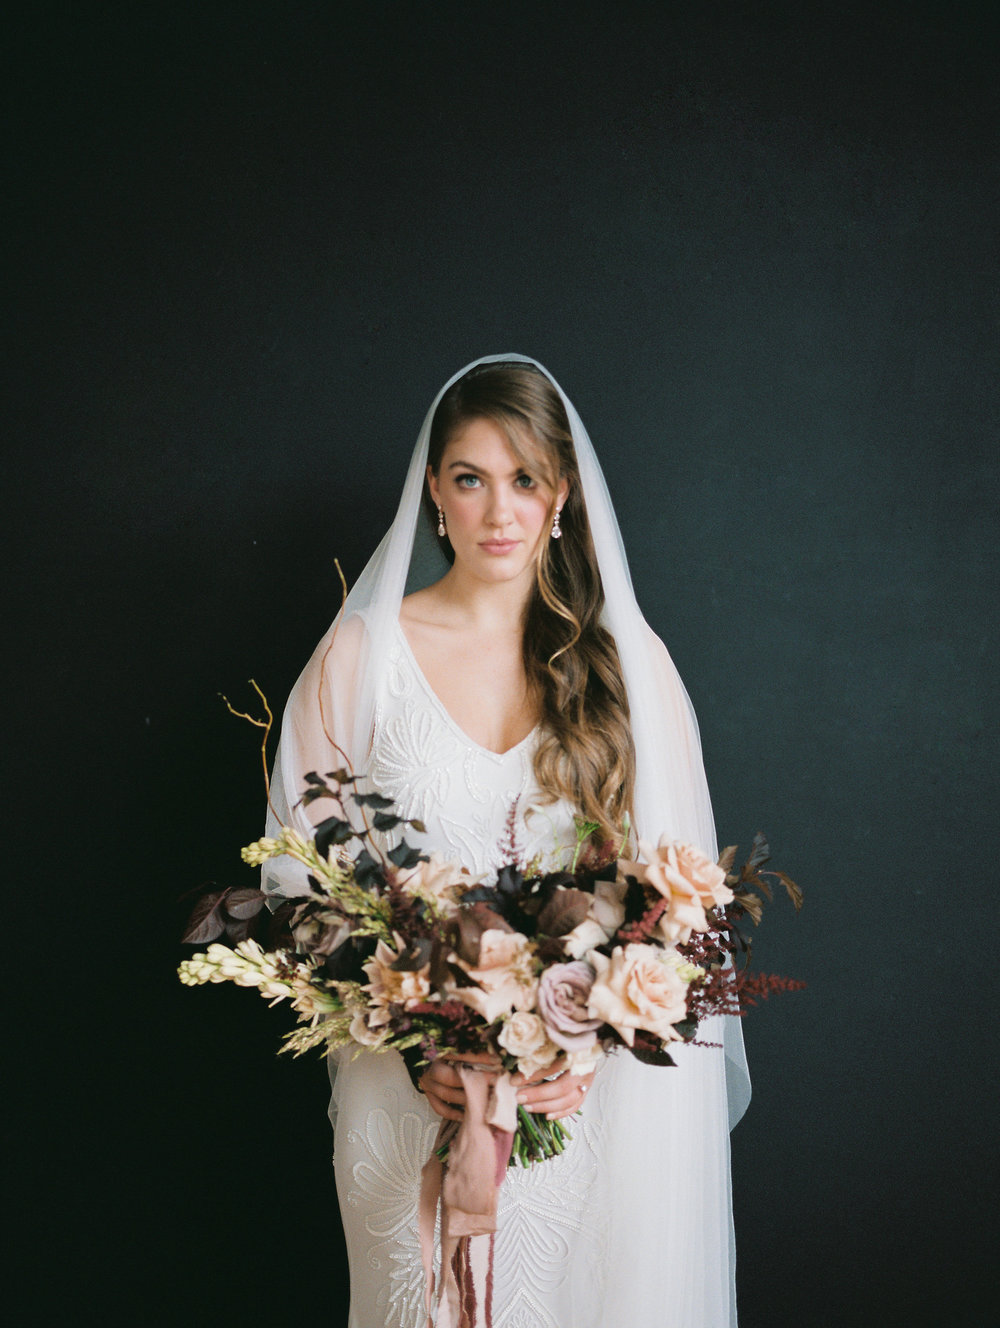 WHEN-SHE-KNEW-PHOTOGRAPHY-STYLED-WEDDING-EDITORIAL-OREGON-47.jpg